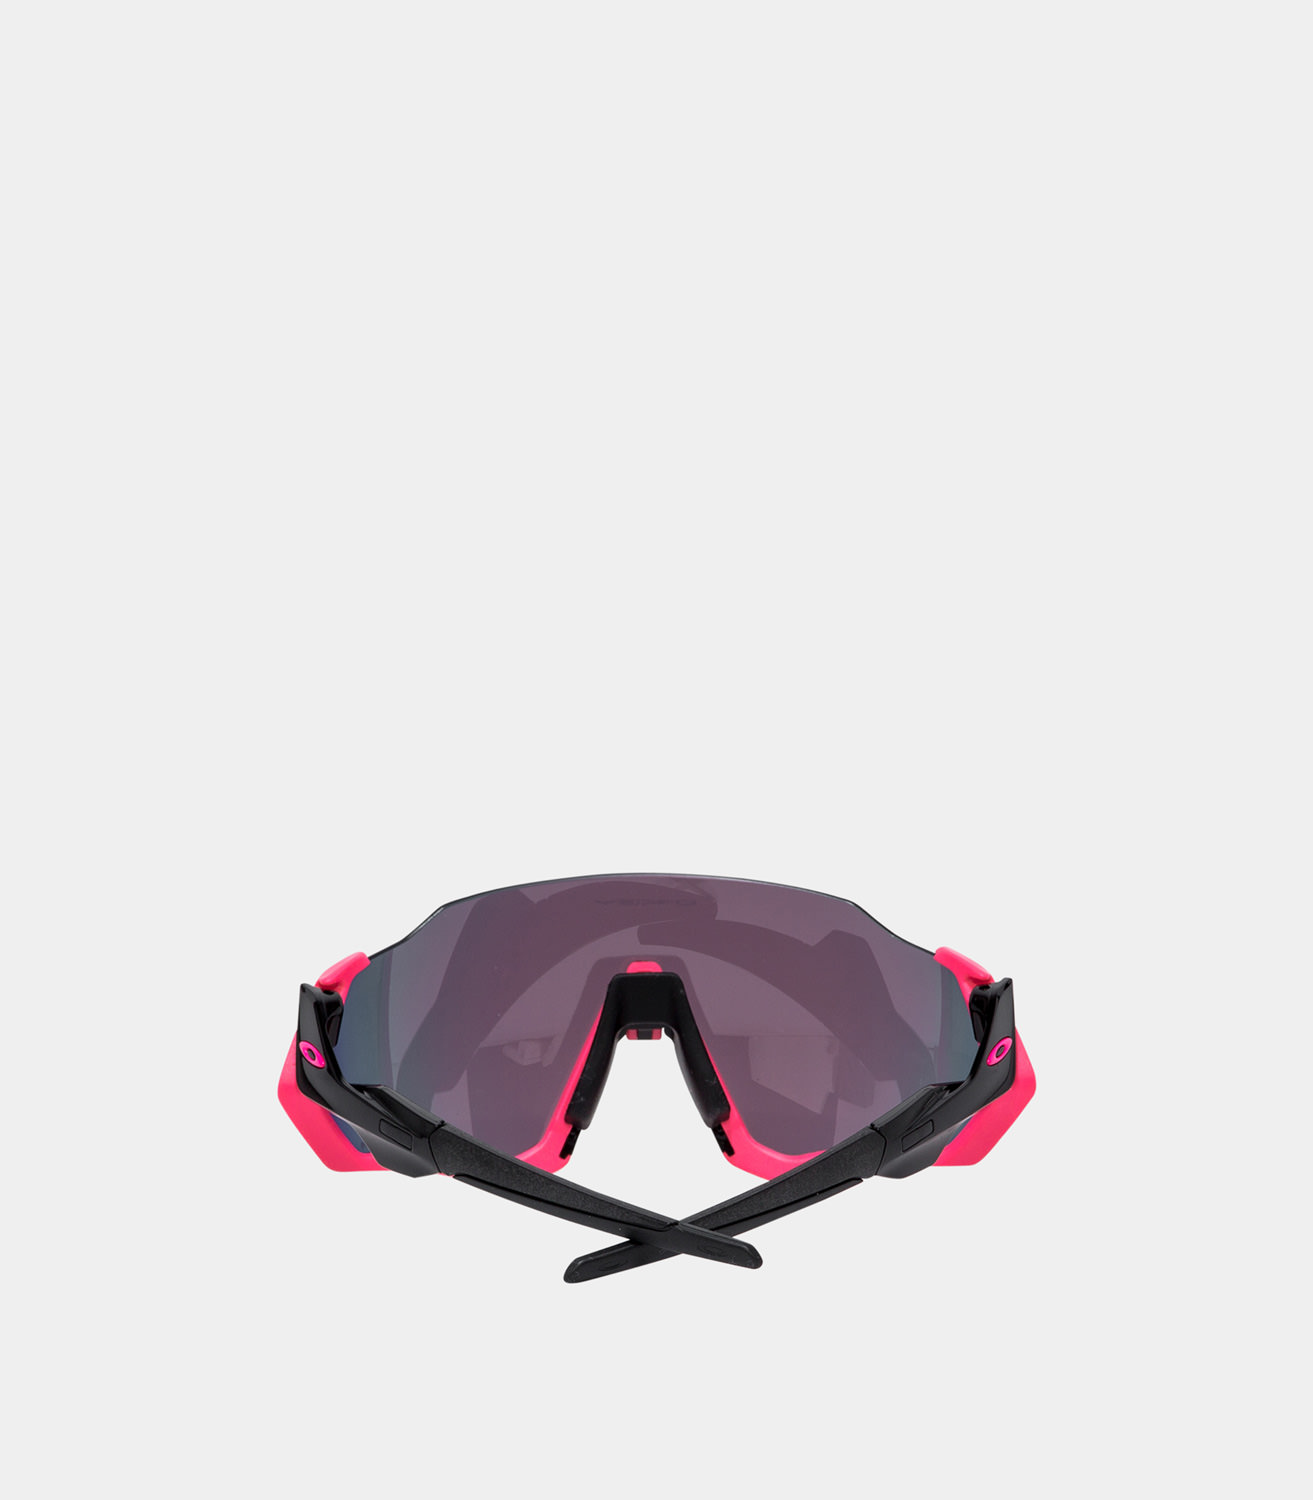 Jacket Sole D Oakley Colore Playground Flight Occhiali Fucsia q8w4FxI